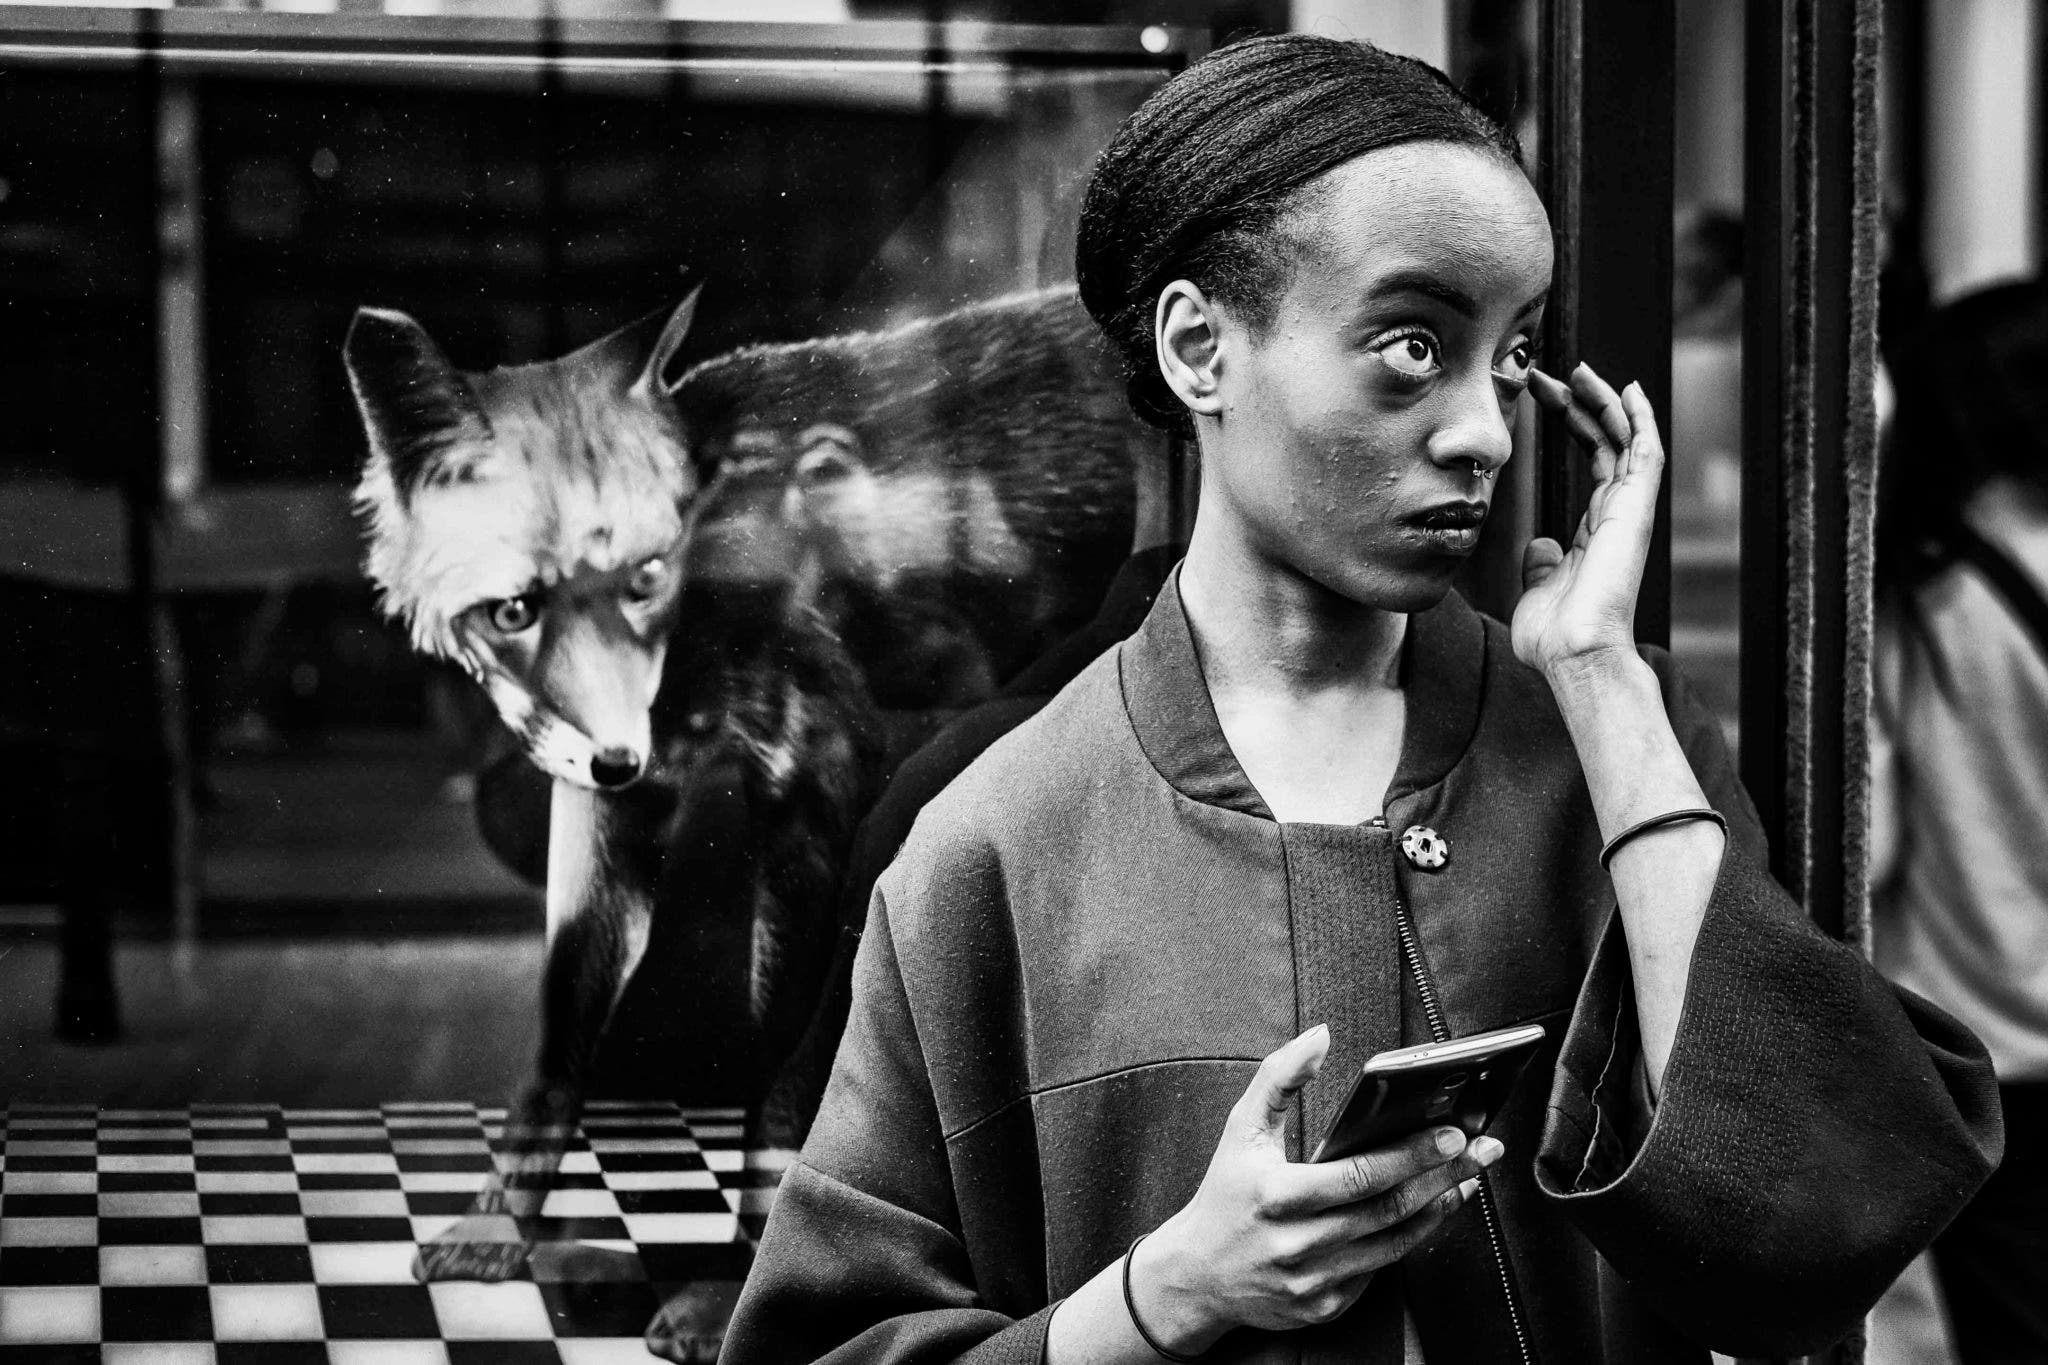 Temoor Iqbal Vents His Frustration With City Life Through Street Photography